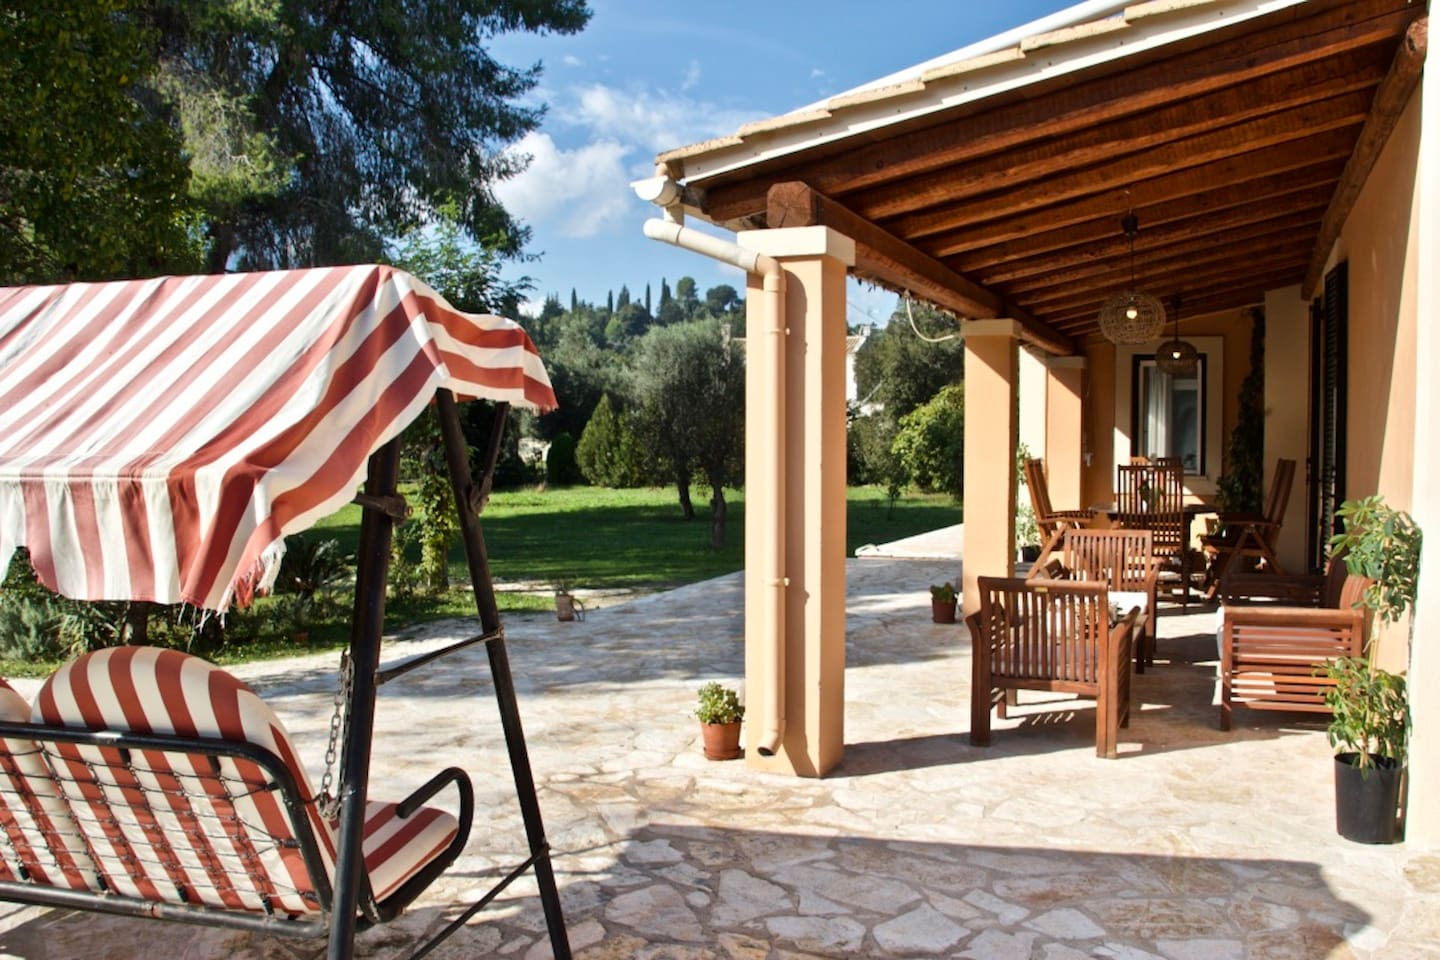 The  villa's porch invites the guests to sit and relax, surrounded by nature.